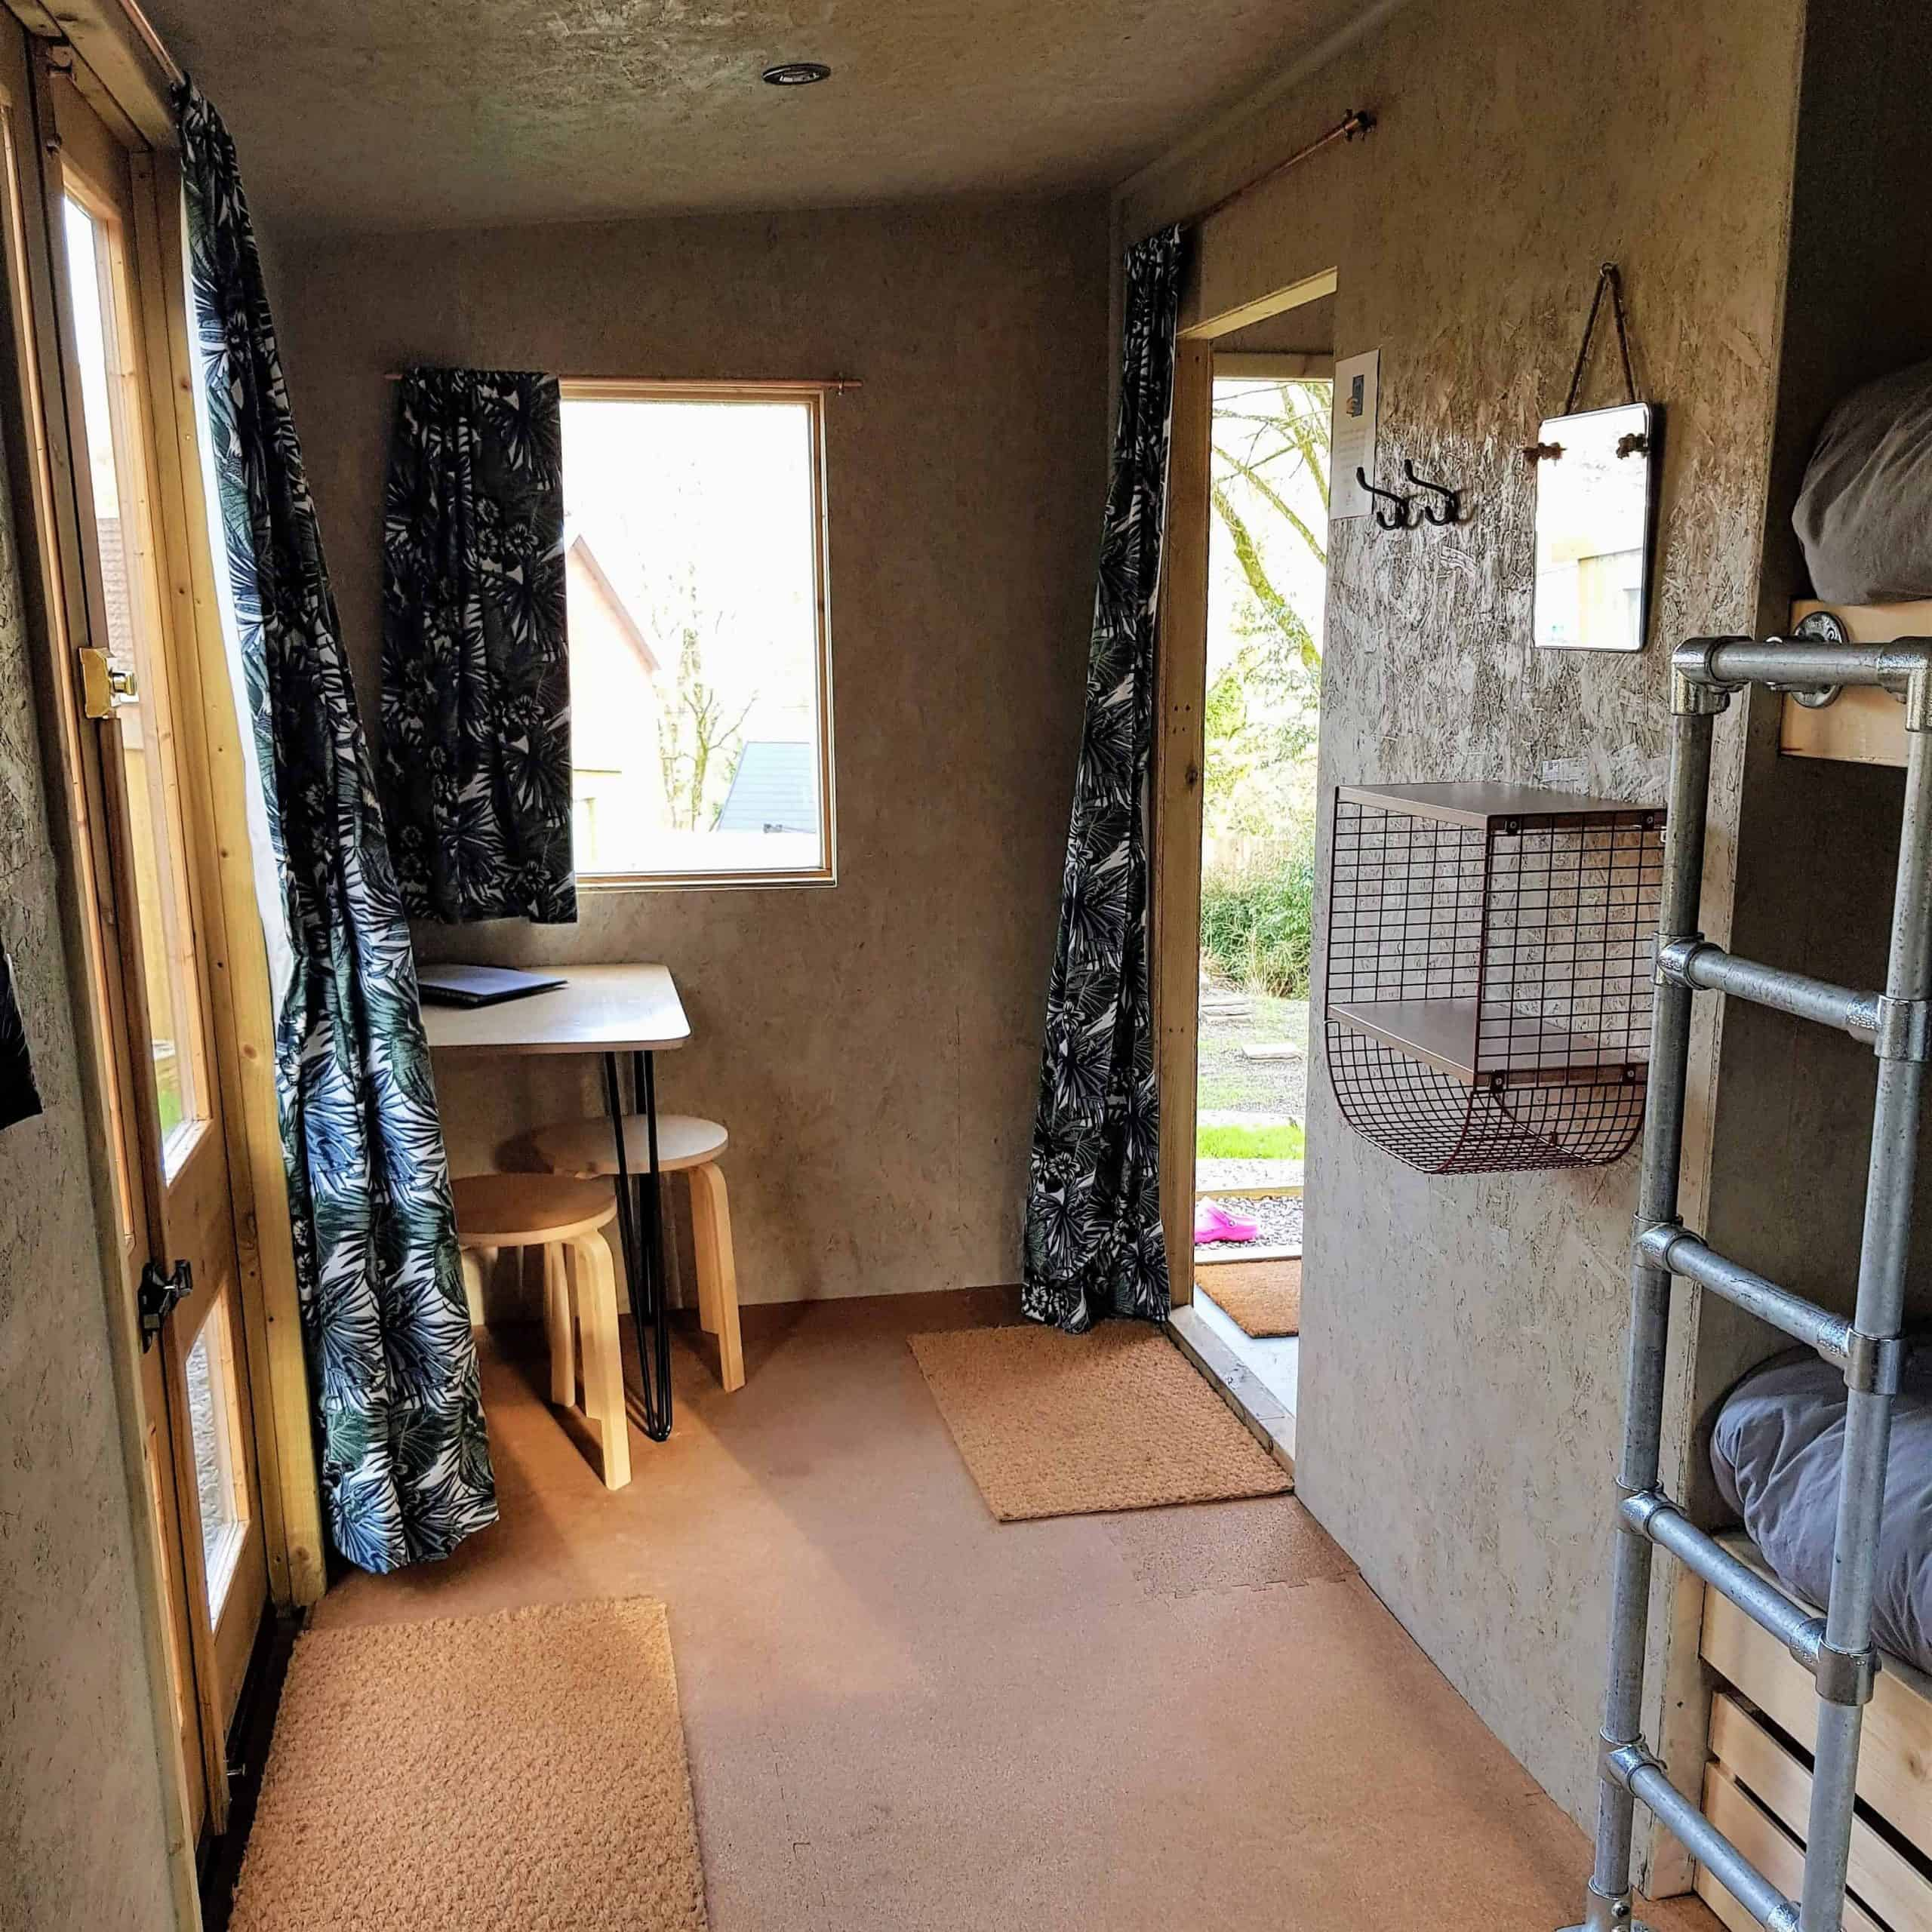 Glamping cabin with table, stools, storage and curtains